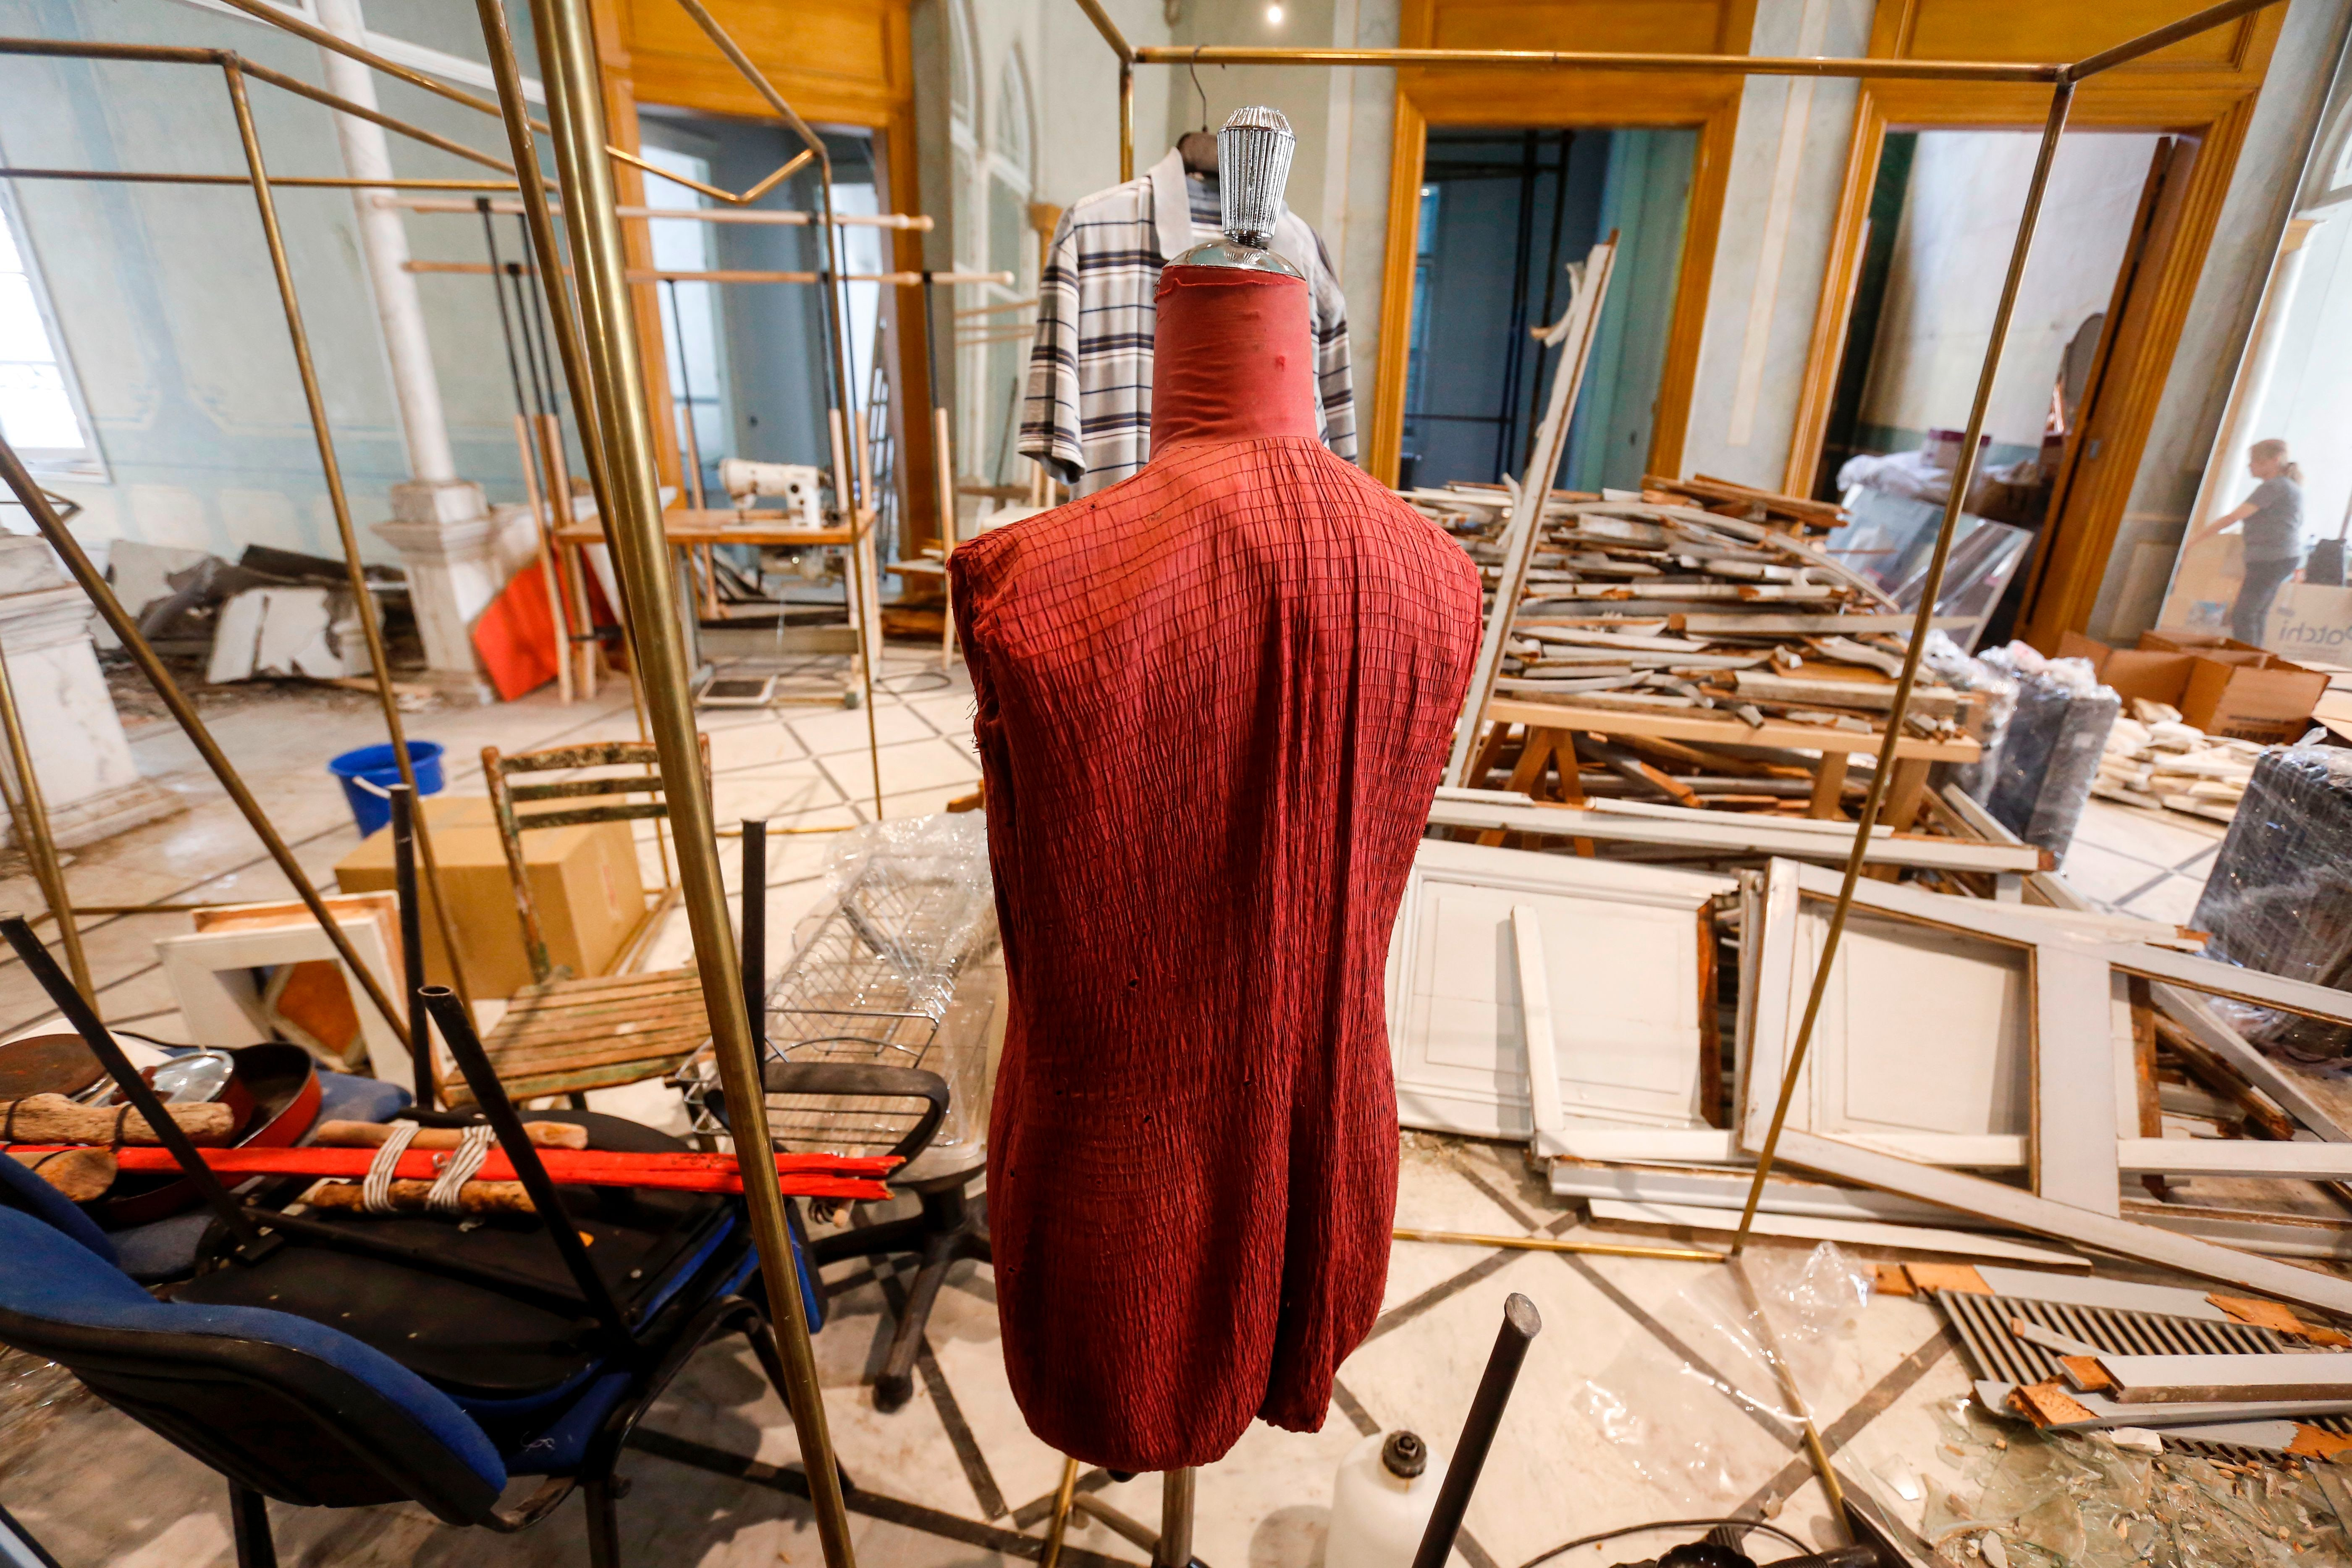 A fashion dummy stands amidst destruction at the Maison Rabih Kayrouz, flagship atelier of designer Rabih Kayrouz, housed in the 19th-century Dagher Palace in Beirut's trendy Gemmayzeh district. Getty Images.